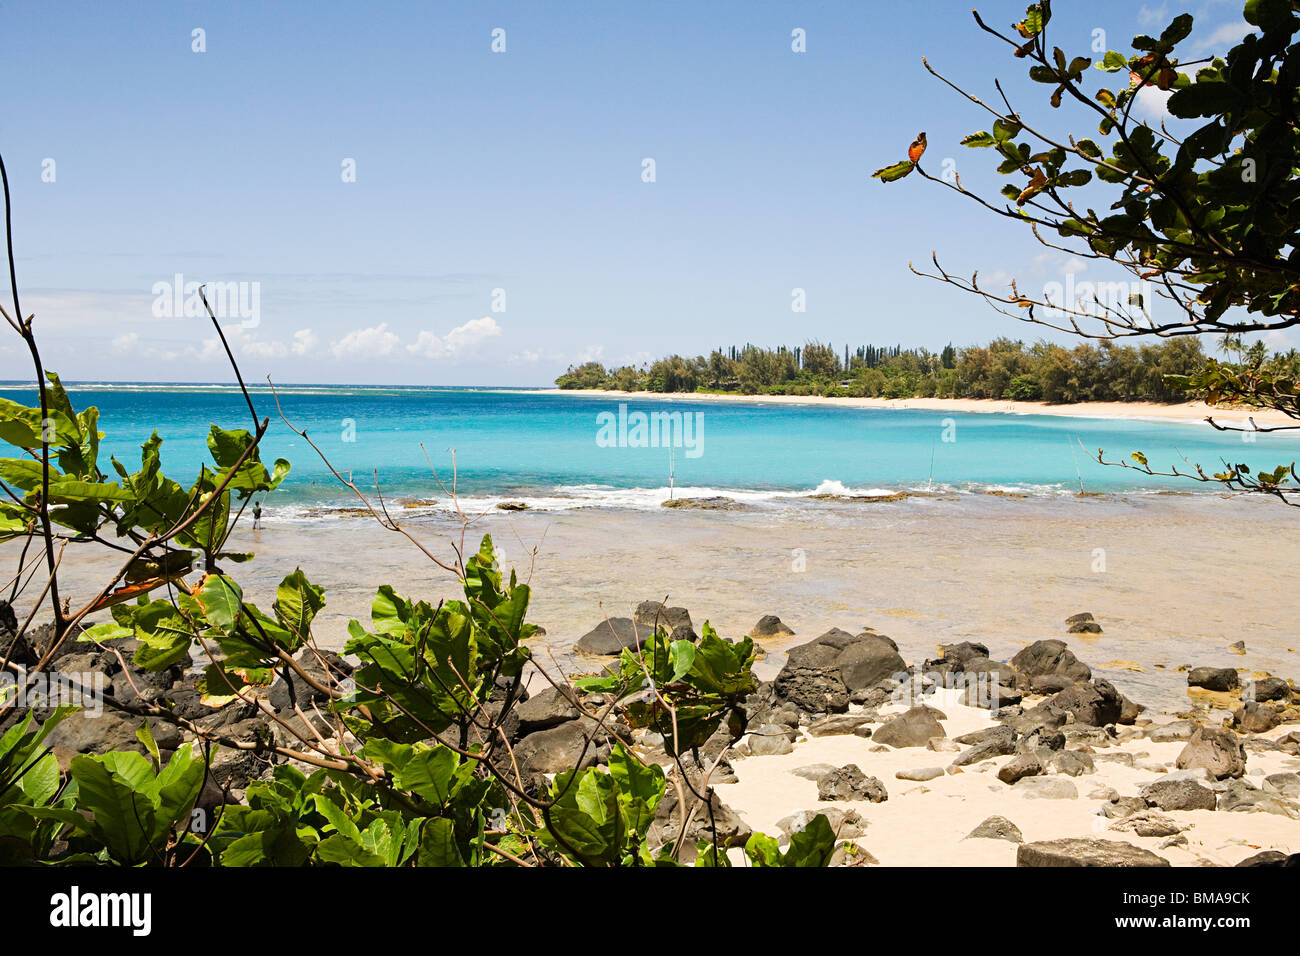 Beach in kauai - Stock Image